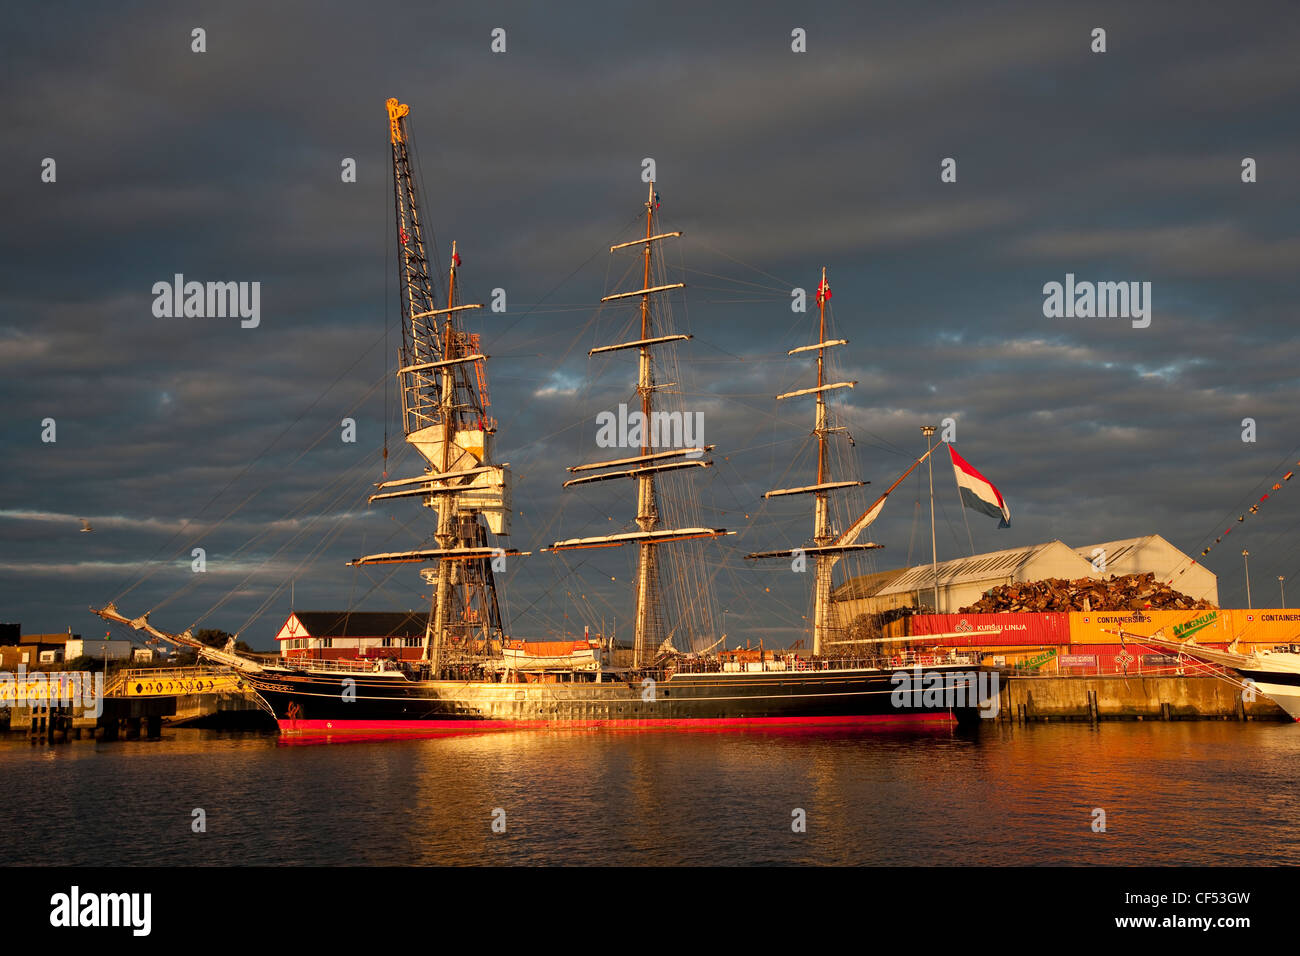 The Clipper Stad Amsterdam at the 2010 Tall Ships Race, Hartlepool. - Stock Image